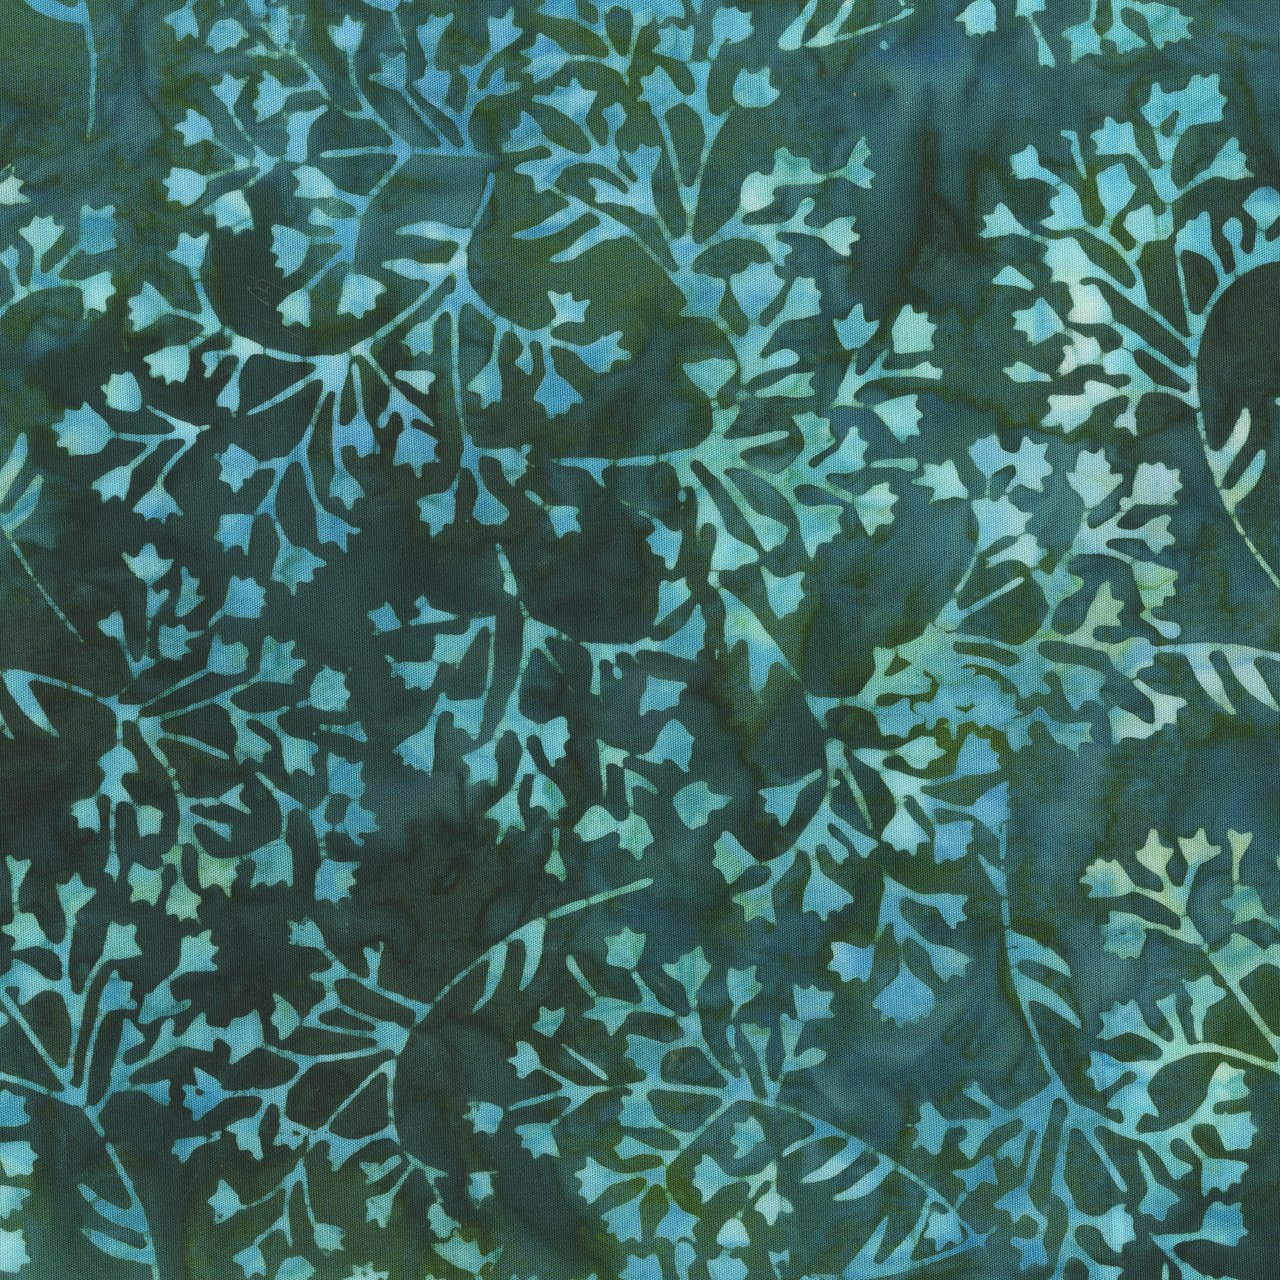 Anthology Batik Print - Poseidon 403Q-6